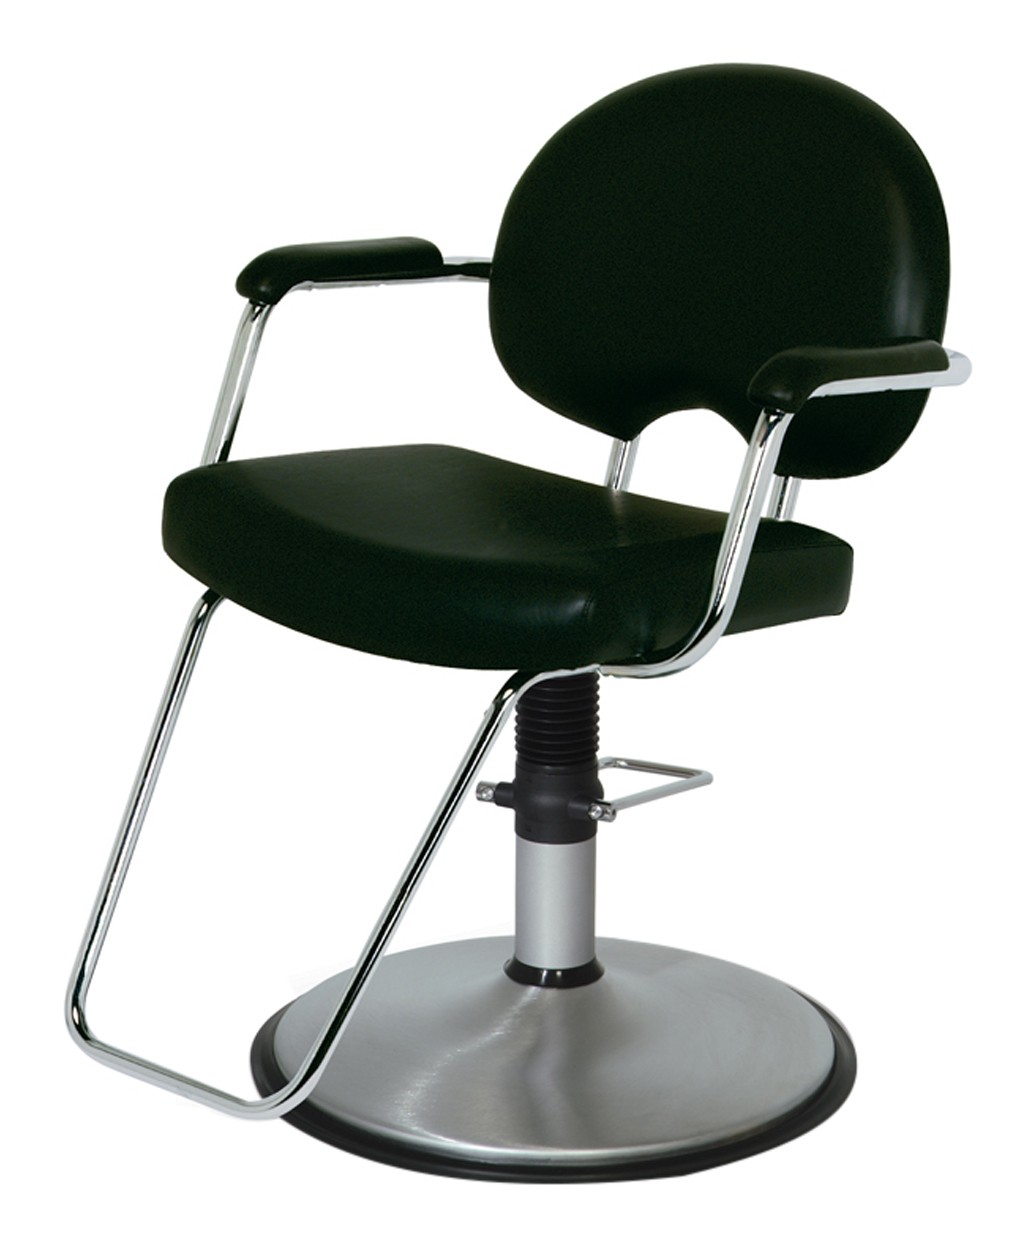 Belvedere AH22C Arch Plus Styling Chair – Belvedere Styling Chairs